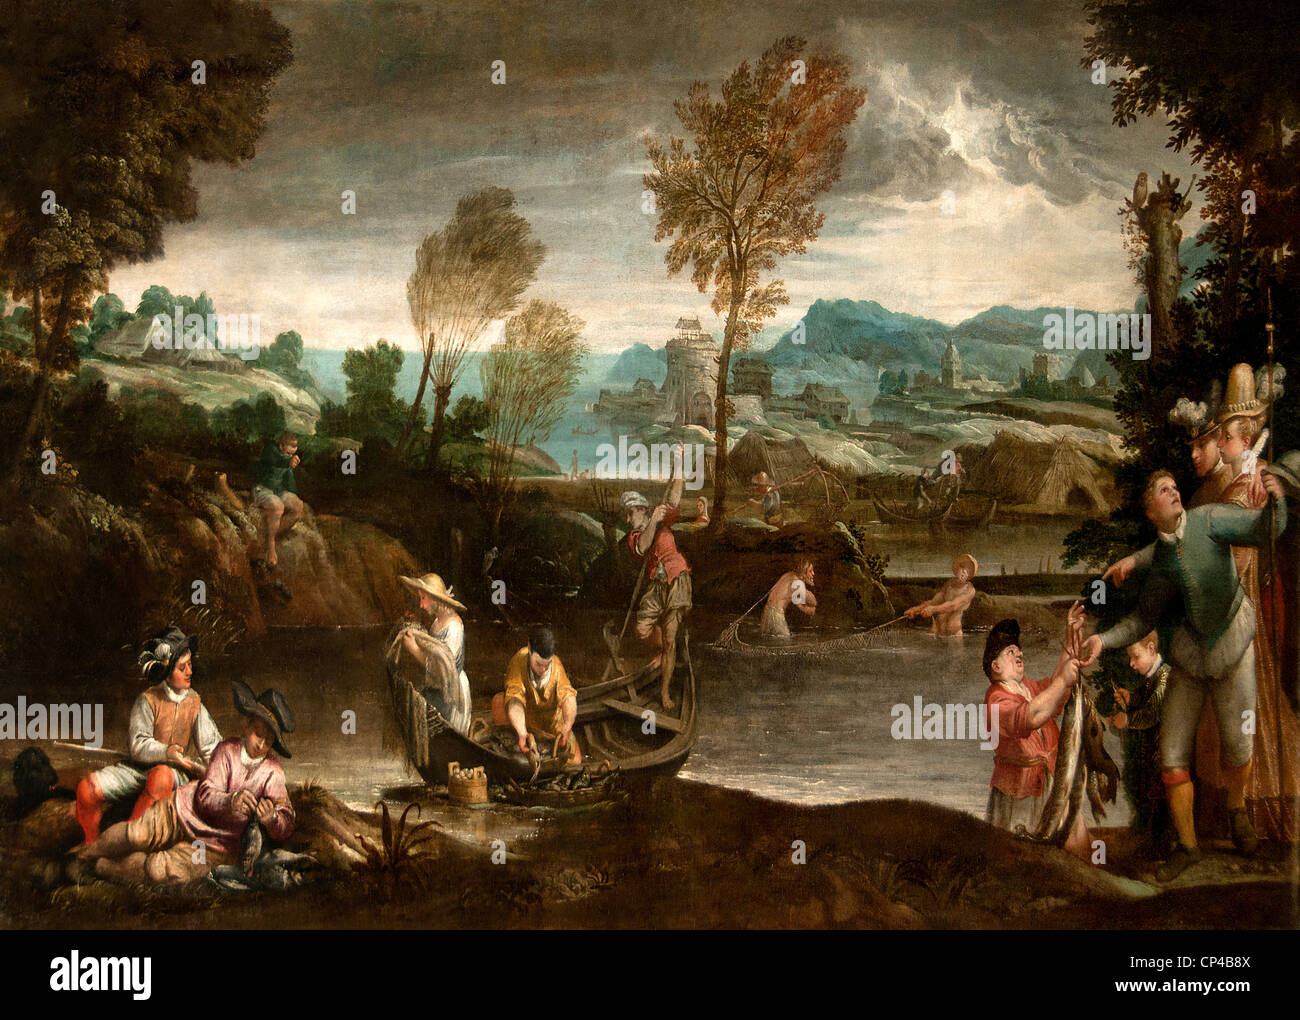 Fisheries 1585 by Annibale Carracci - Annibale Carrache 1560 - 1609 Italy Italian - Stock Image